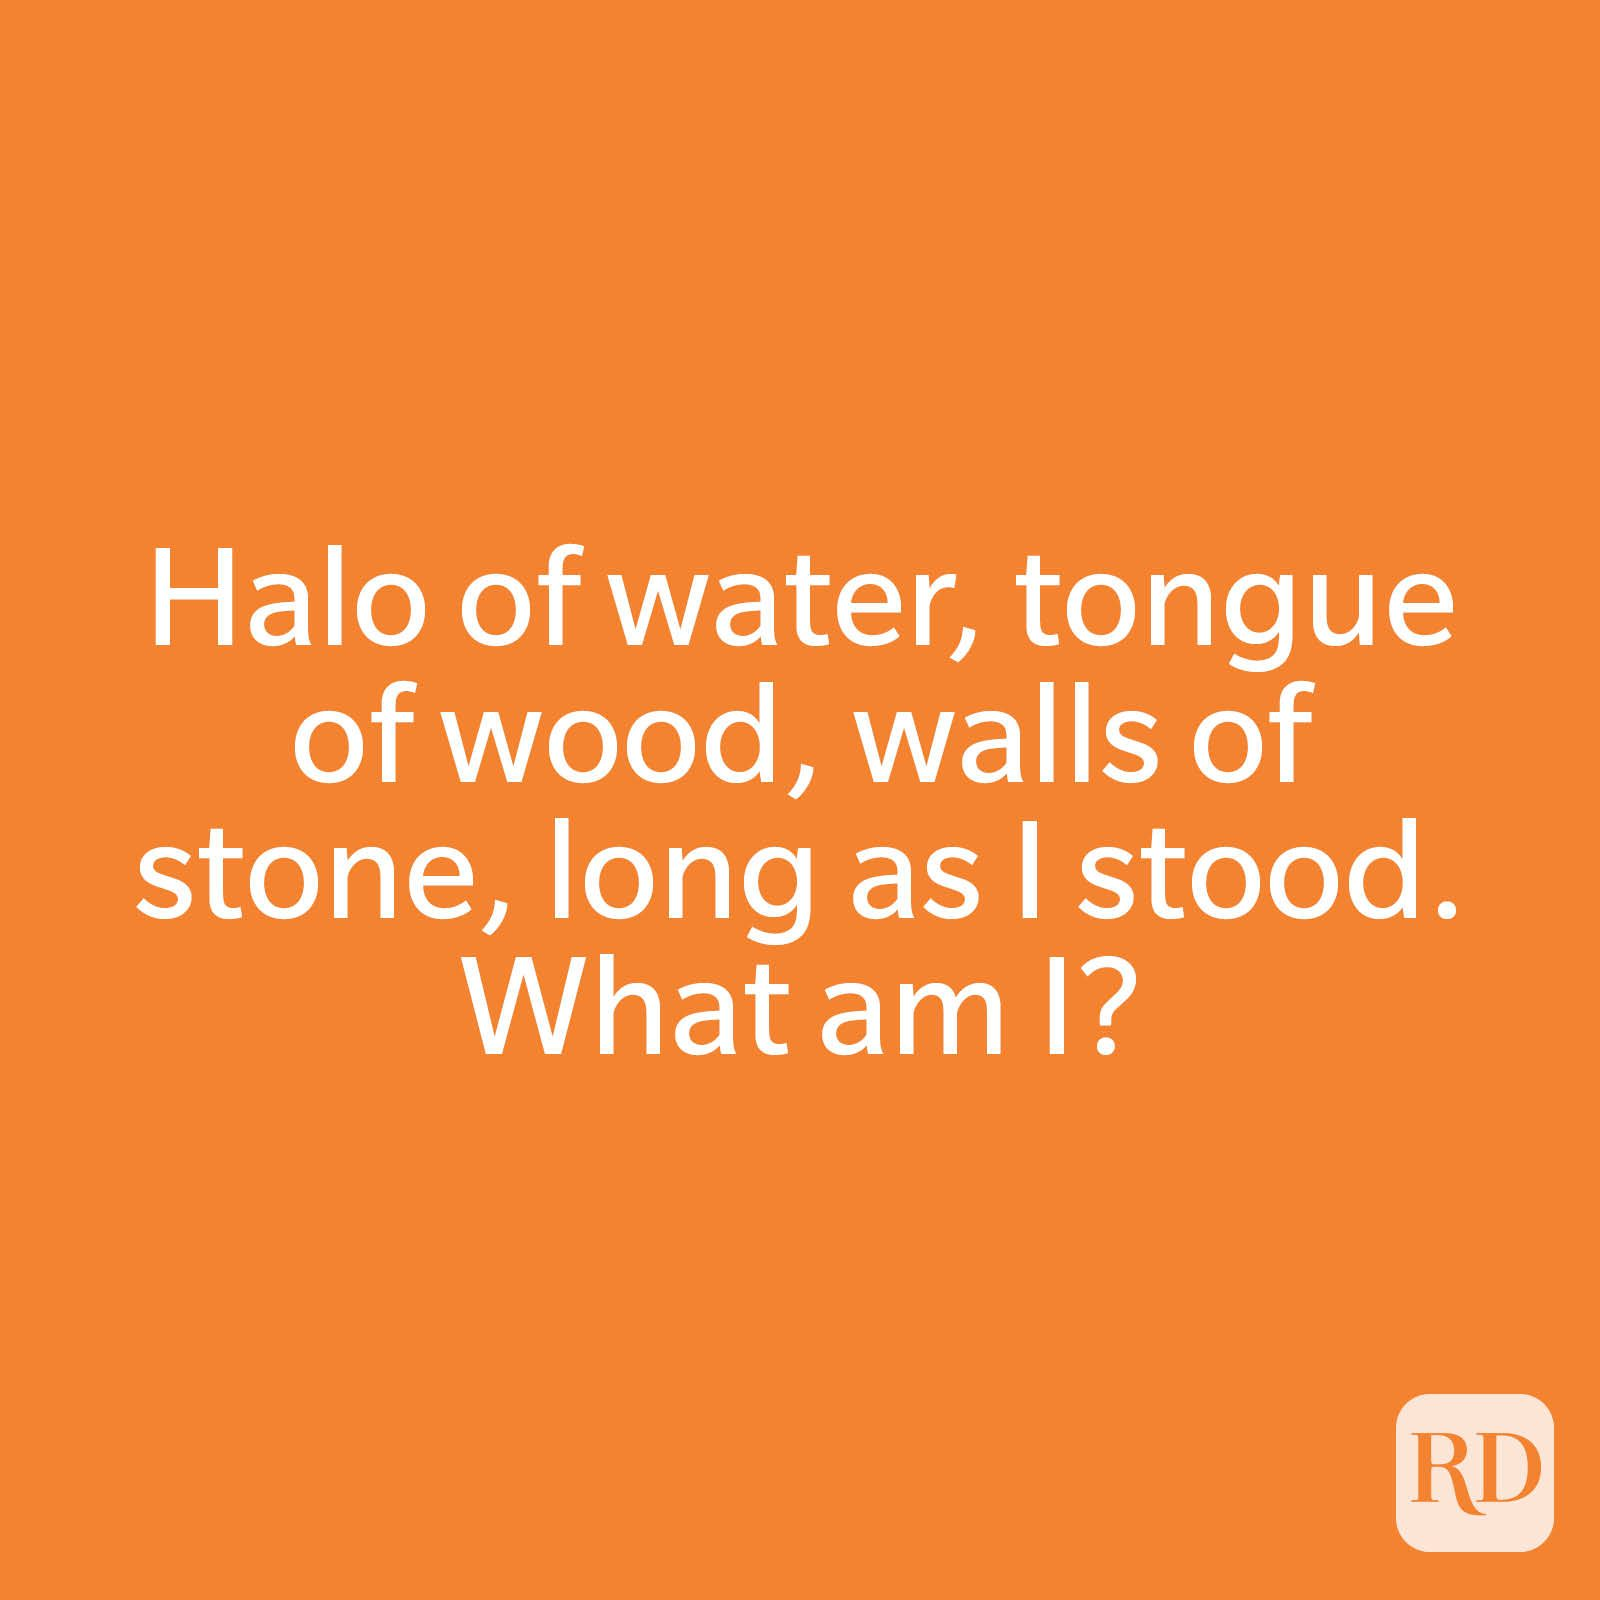 Halo of water, tongue of wood, walls of stone, long as I stood. What am I?